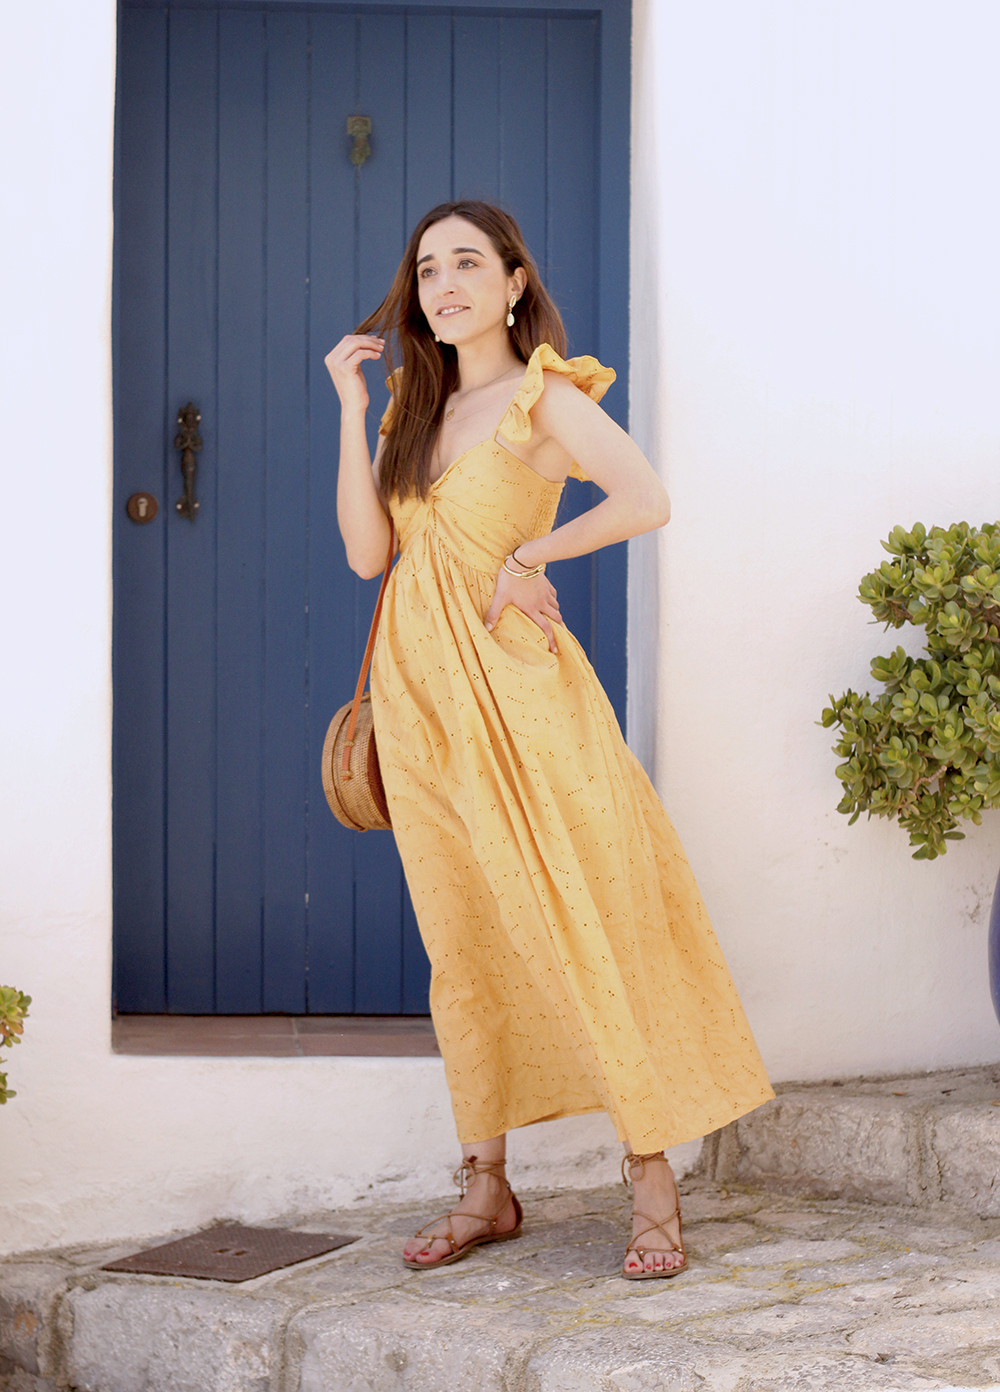 mustard embroidered midi dress straw bag street style outfit 2019 vacation ibiza9